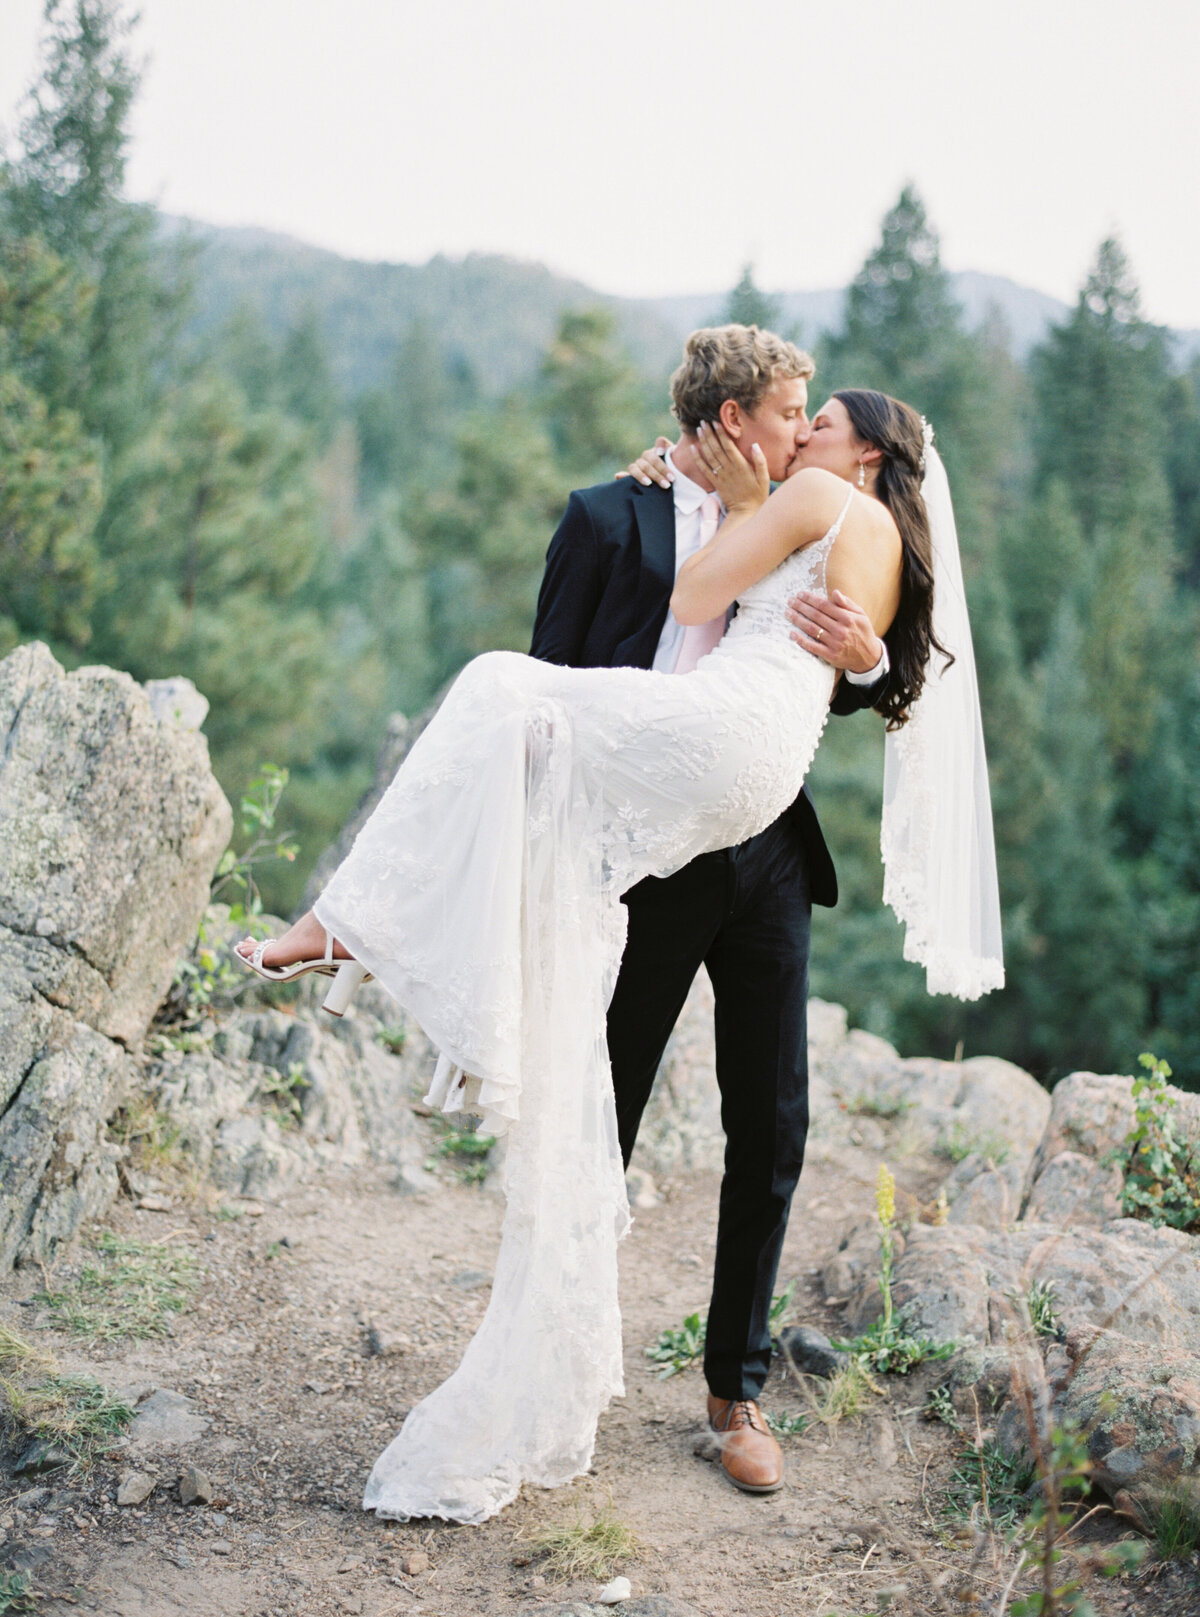 Melissa Brielle Photography Colorado Fine Art Wedding Engagement Photographer Photograph Melissa Minkner Light Airy Luxury High End18